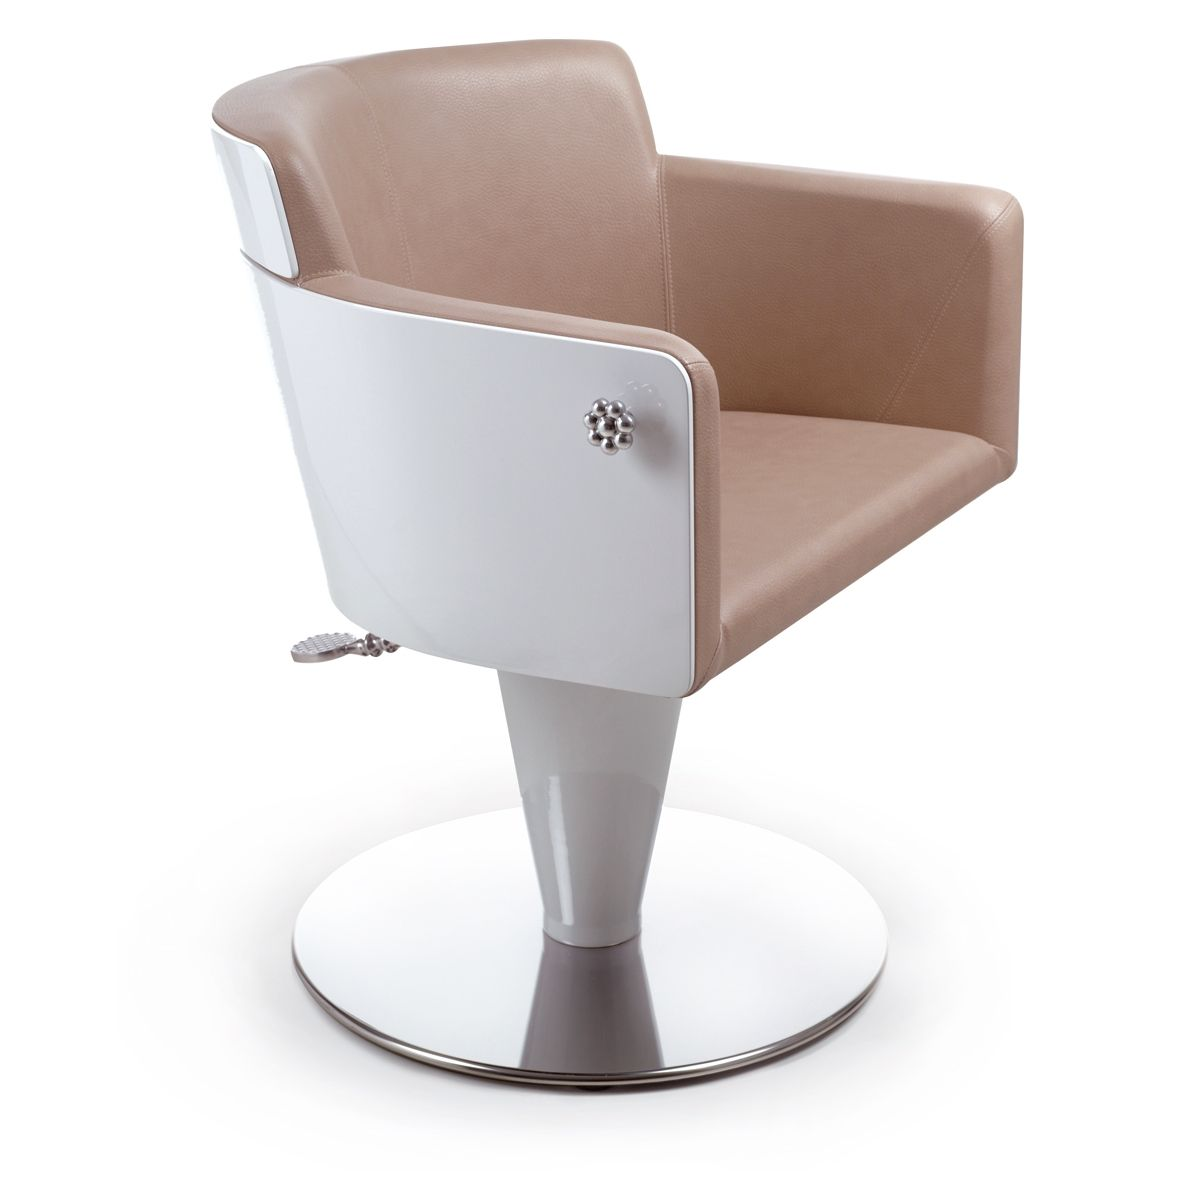 Aida, Styling Salon Chairs - Gamma & Bross